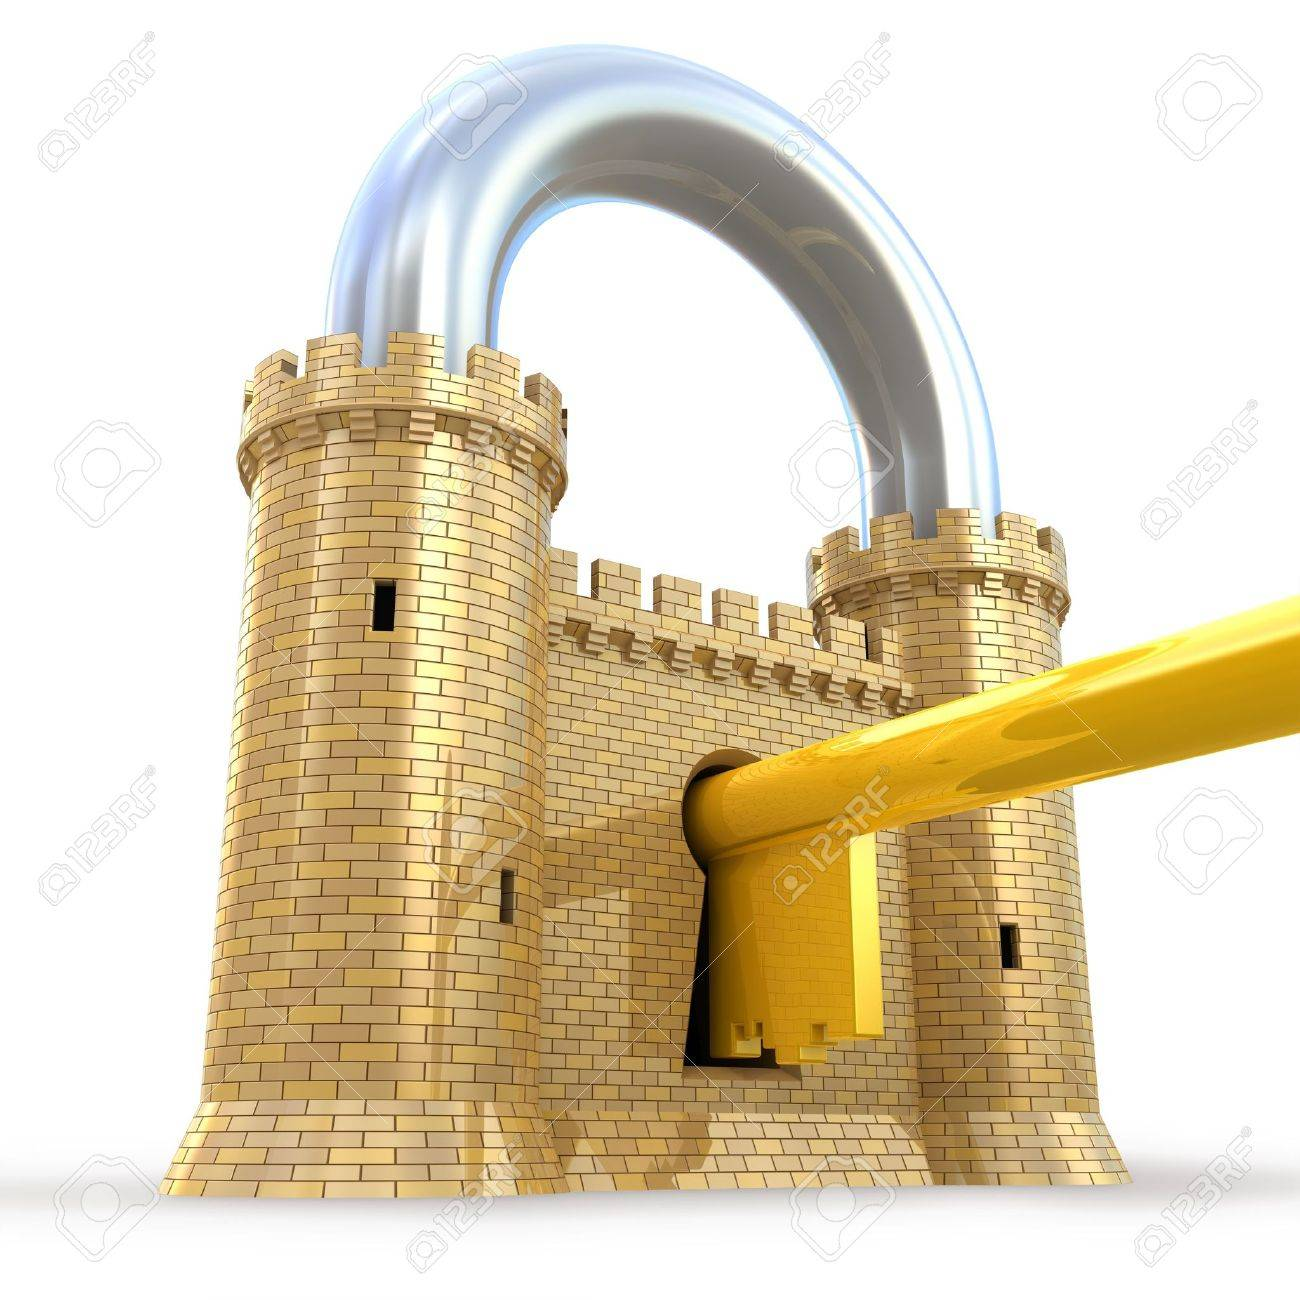 Mighty fortress as a padlock - 8037410